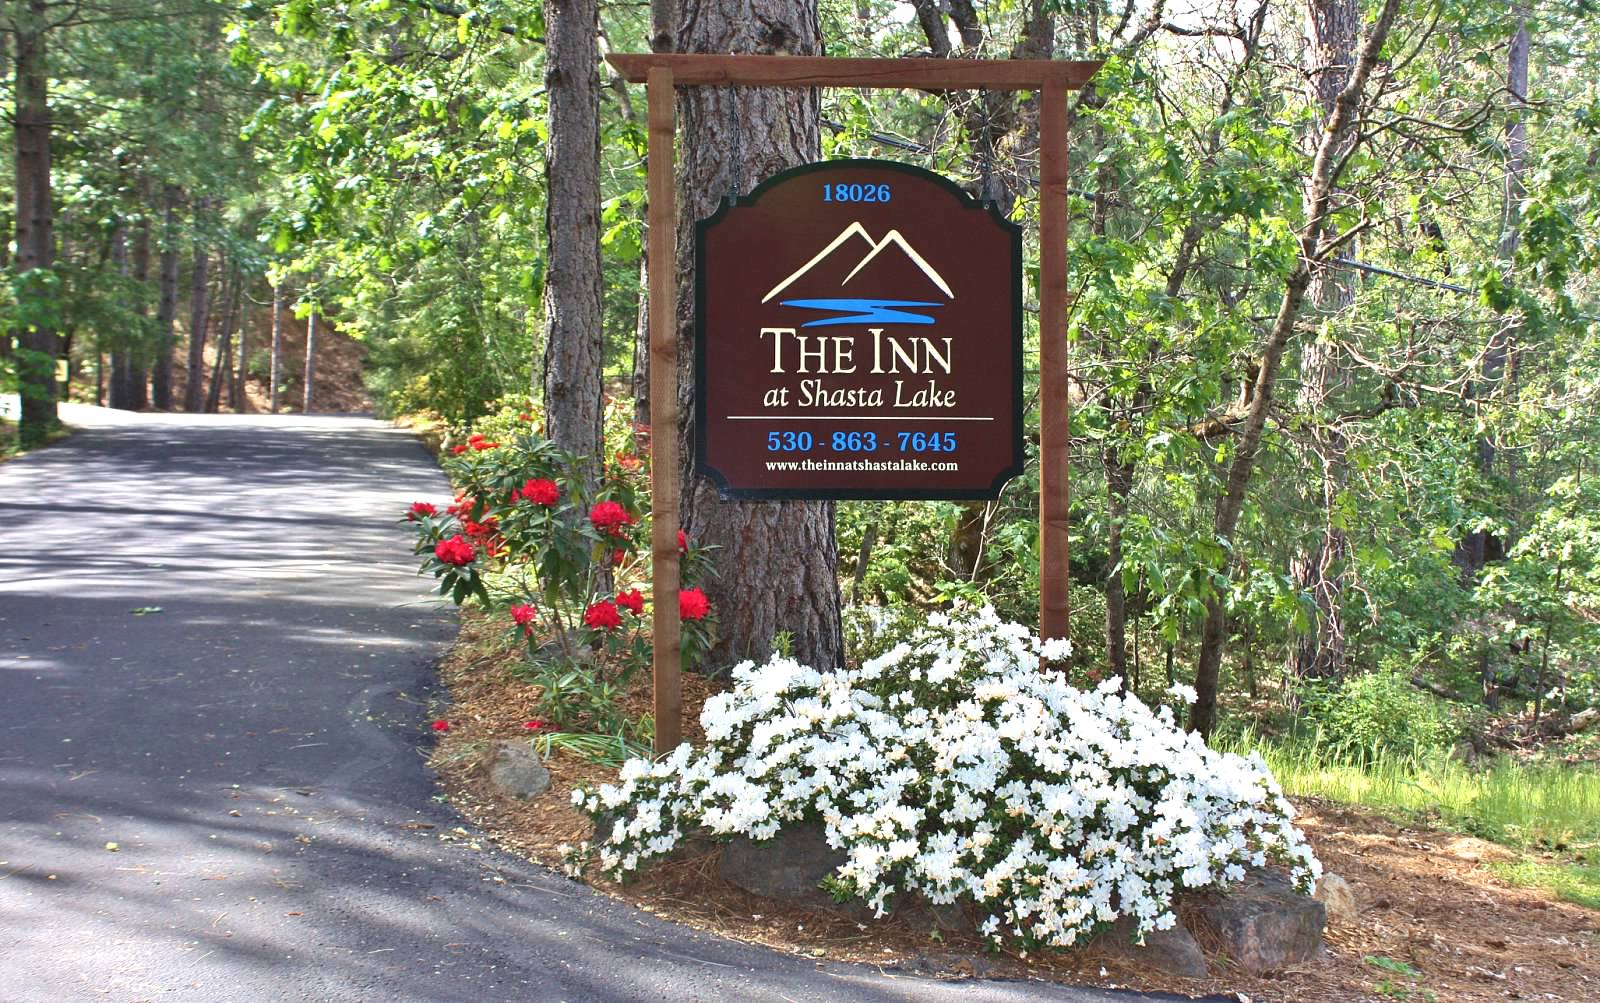 The Inn at Shasta Lake